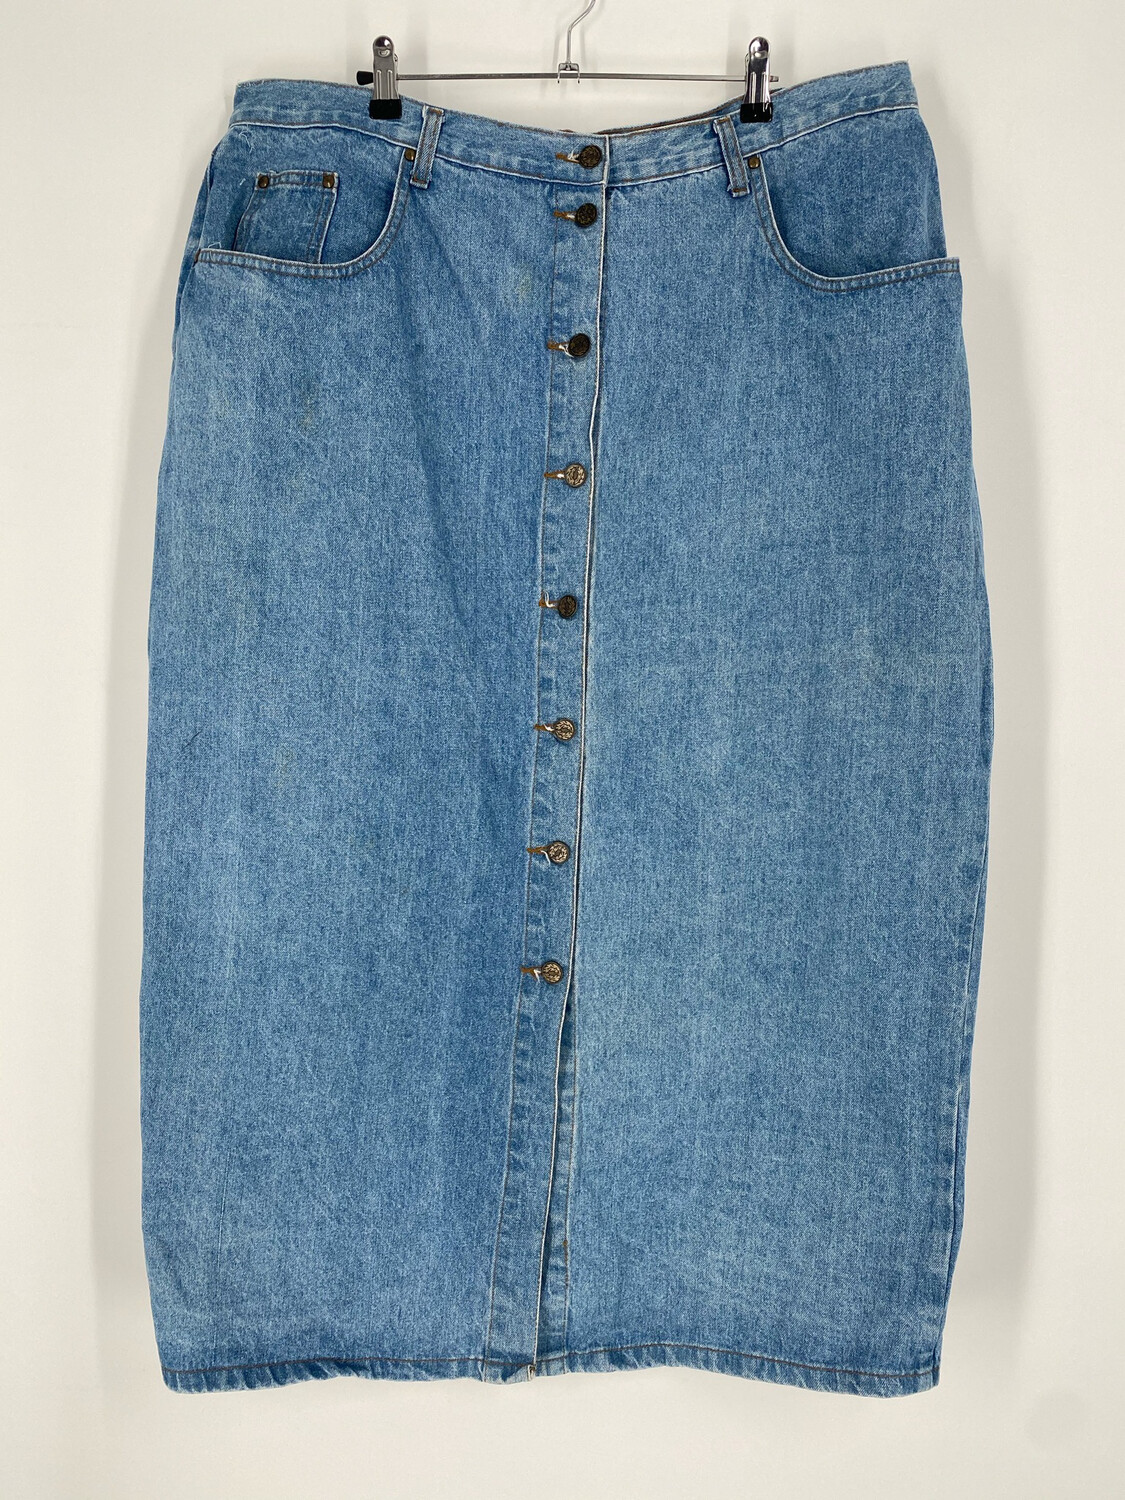 Authentic Made In The Shade Vintage Denim Skirt Size 22